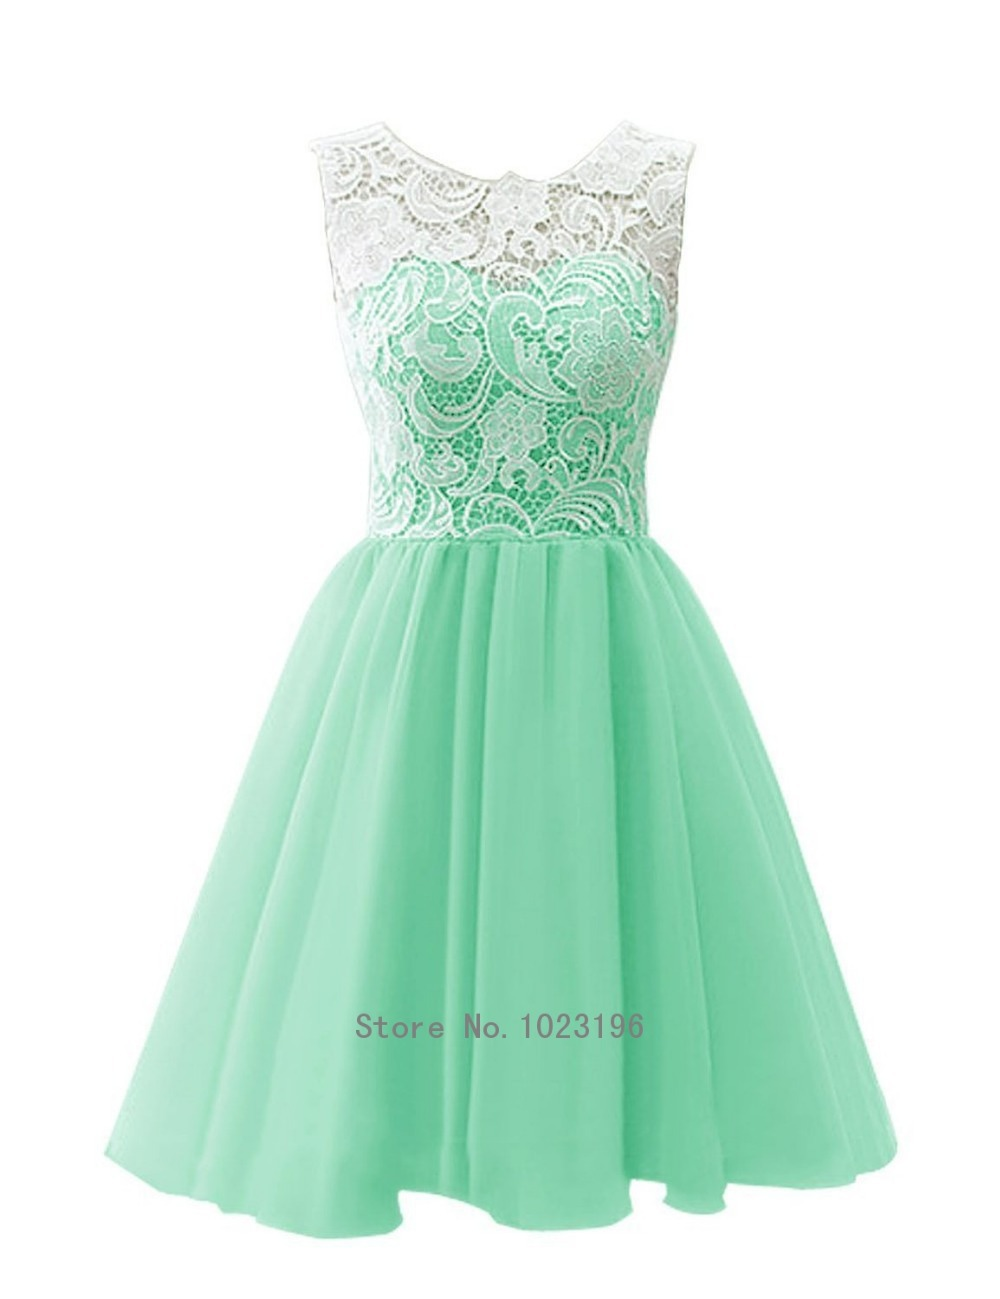 Find great deals on eBay for Kids Lace Dress in Girl's Dresses Sizes 4 and Up. Shop with confidence.